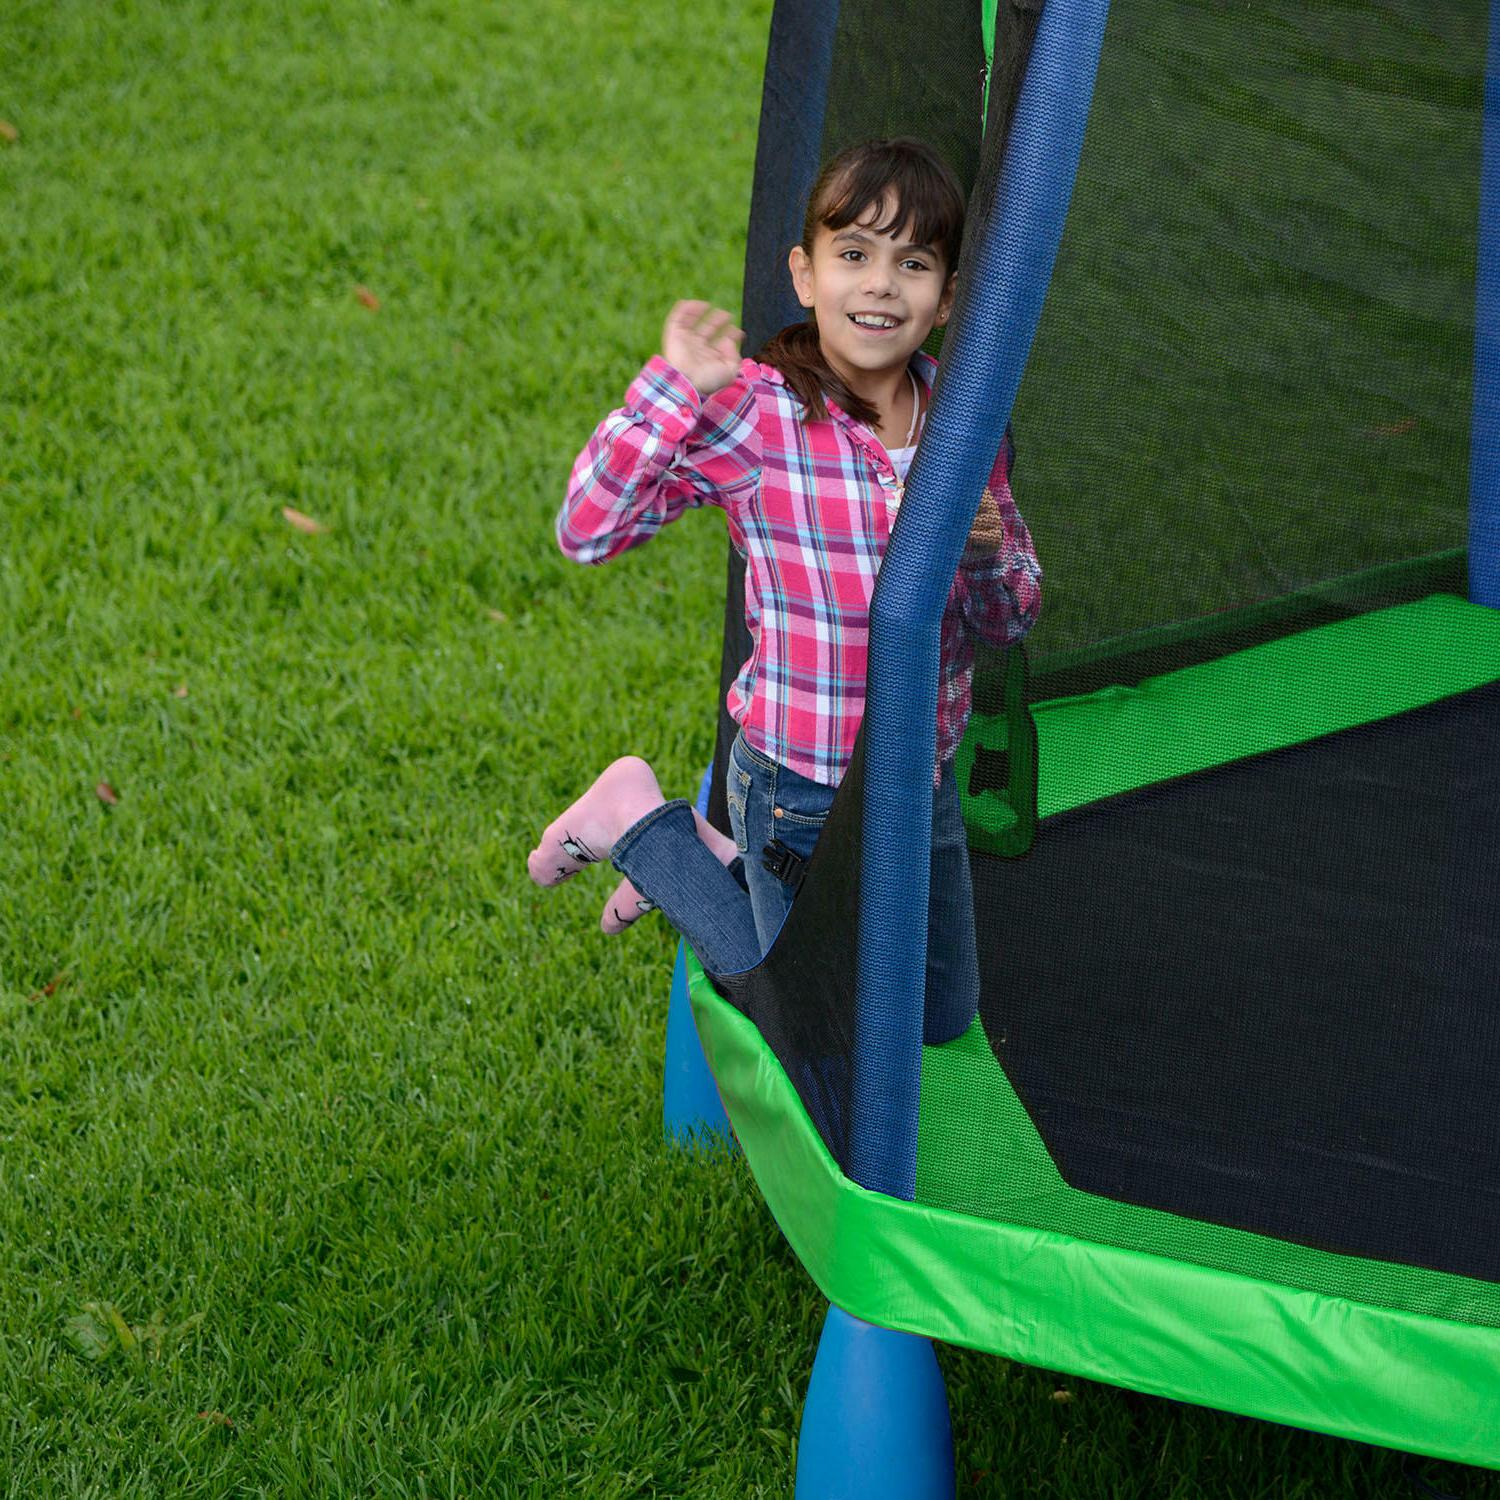 Bounce First Trampoline